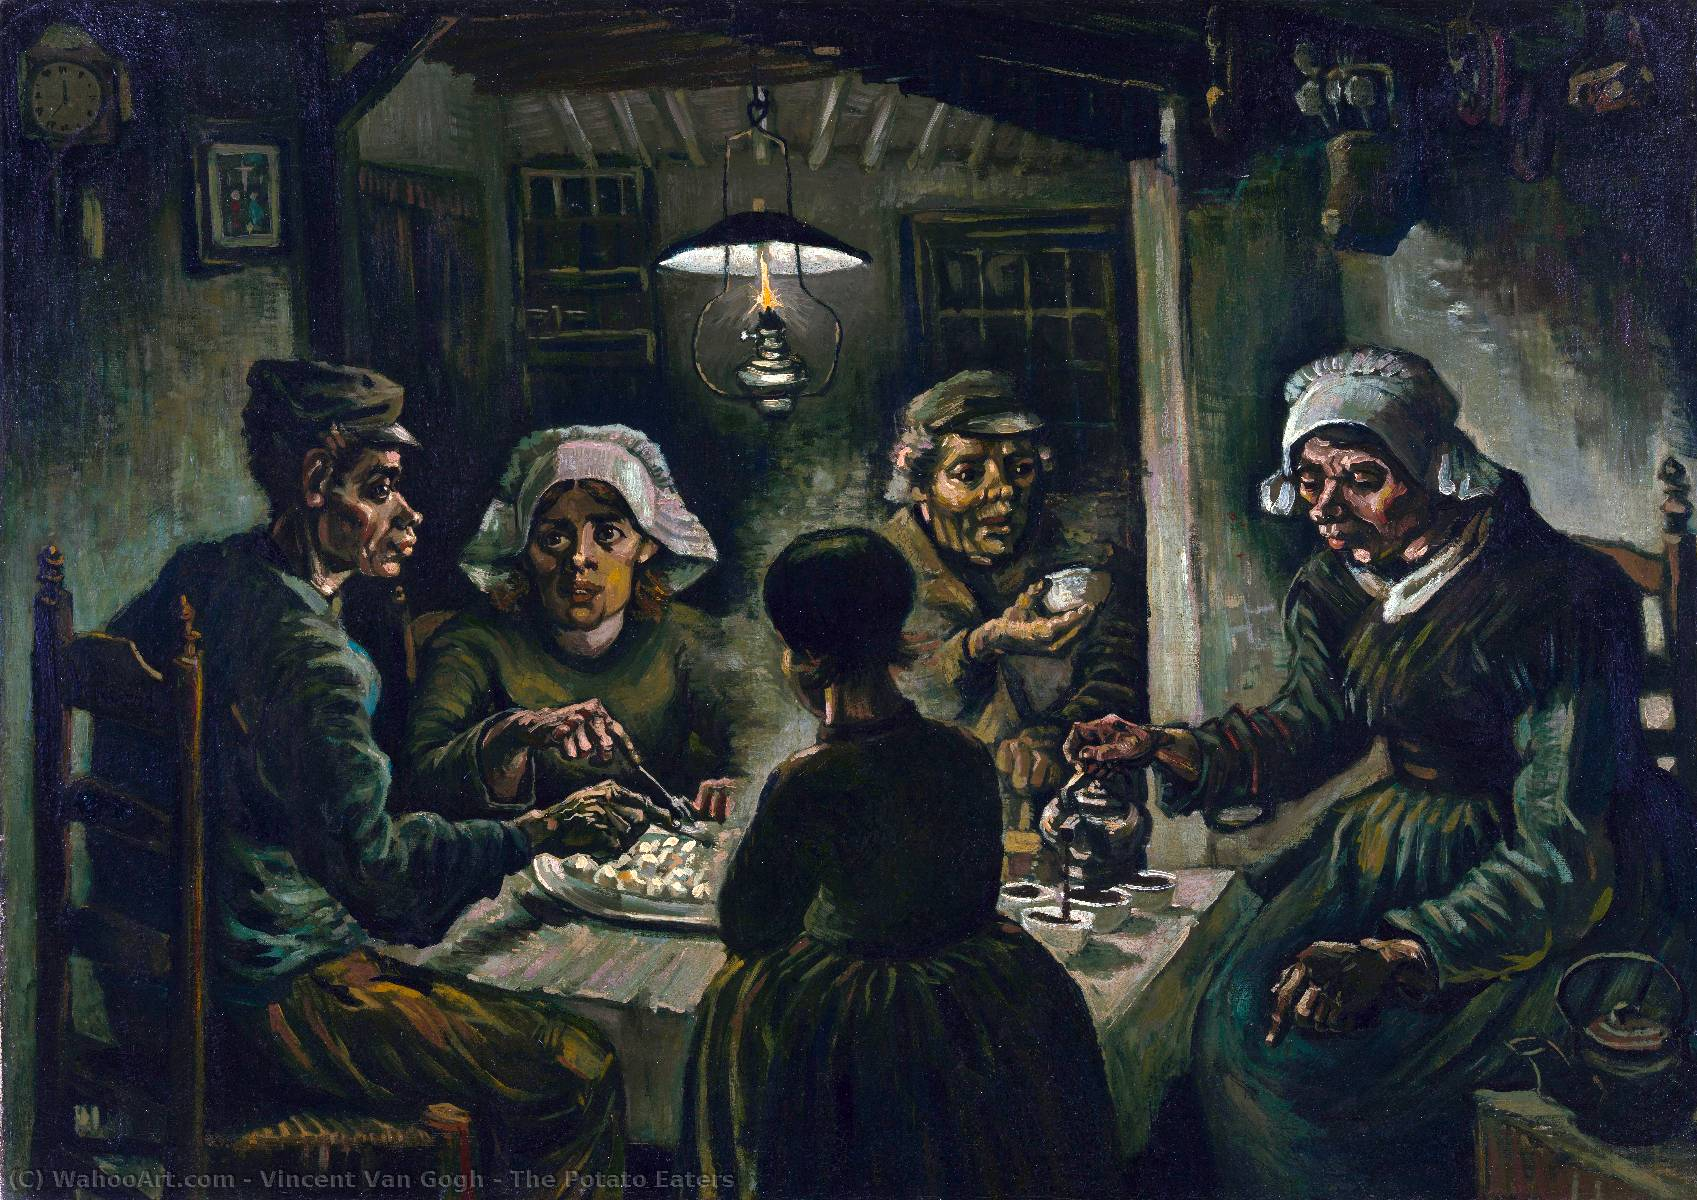 Order Art Reproductions | The Potato Eaters by Vincent Van Gogh | Most-Famous-Paintings.com